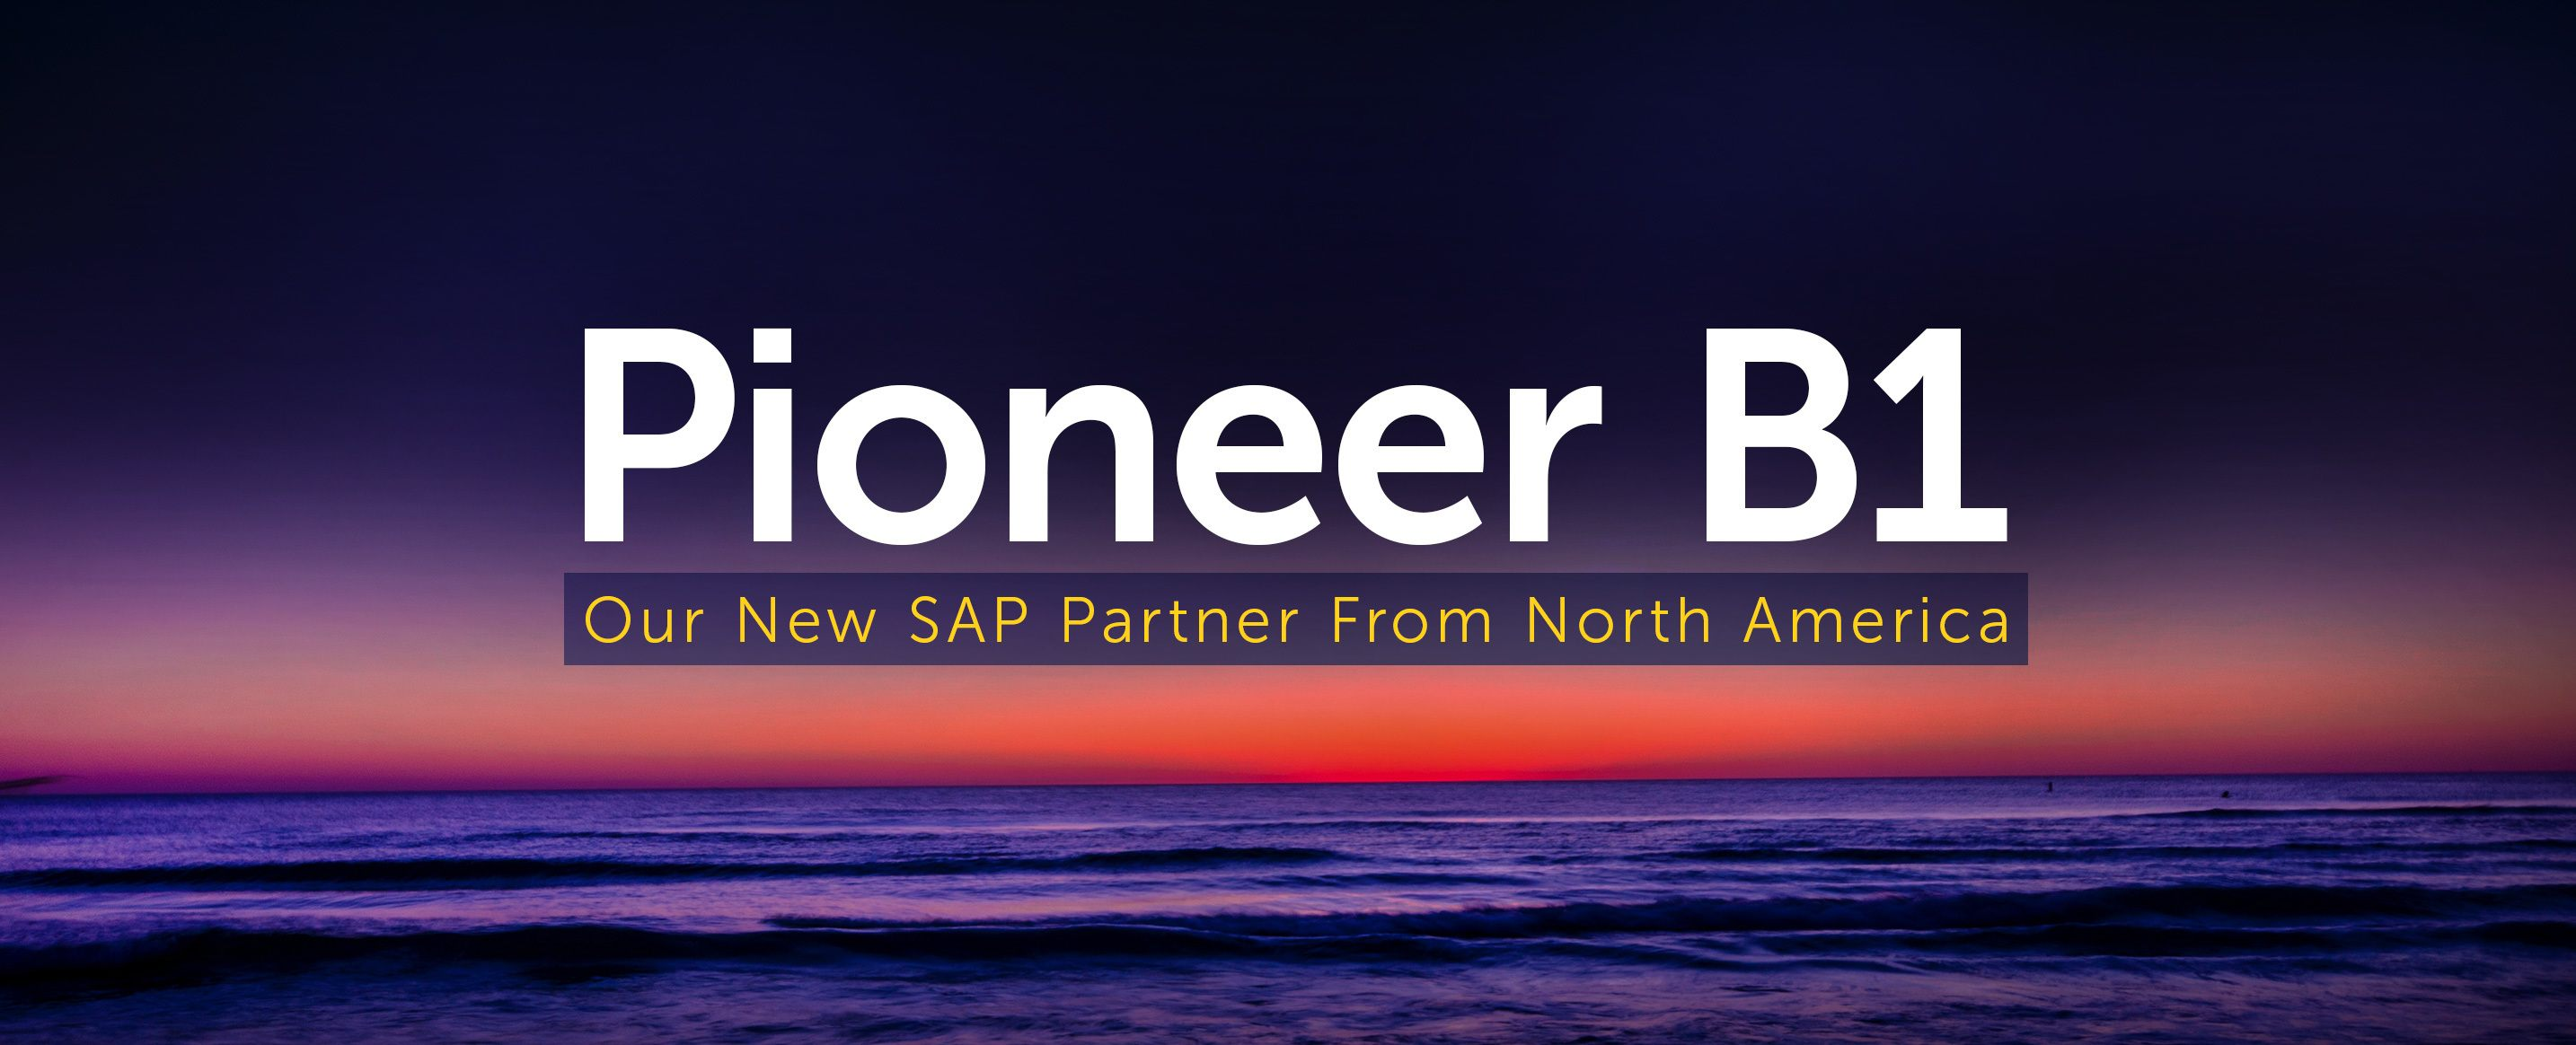 pioneer-b1-sap-b1-partner-north-america